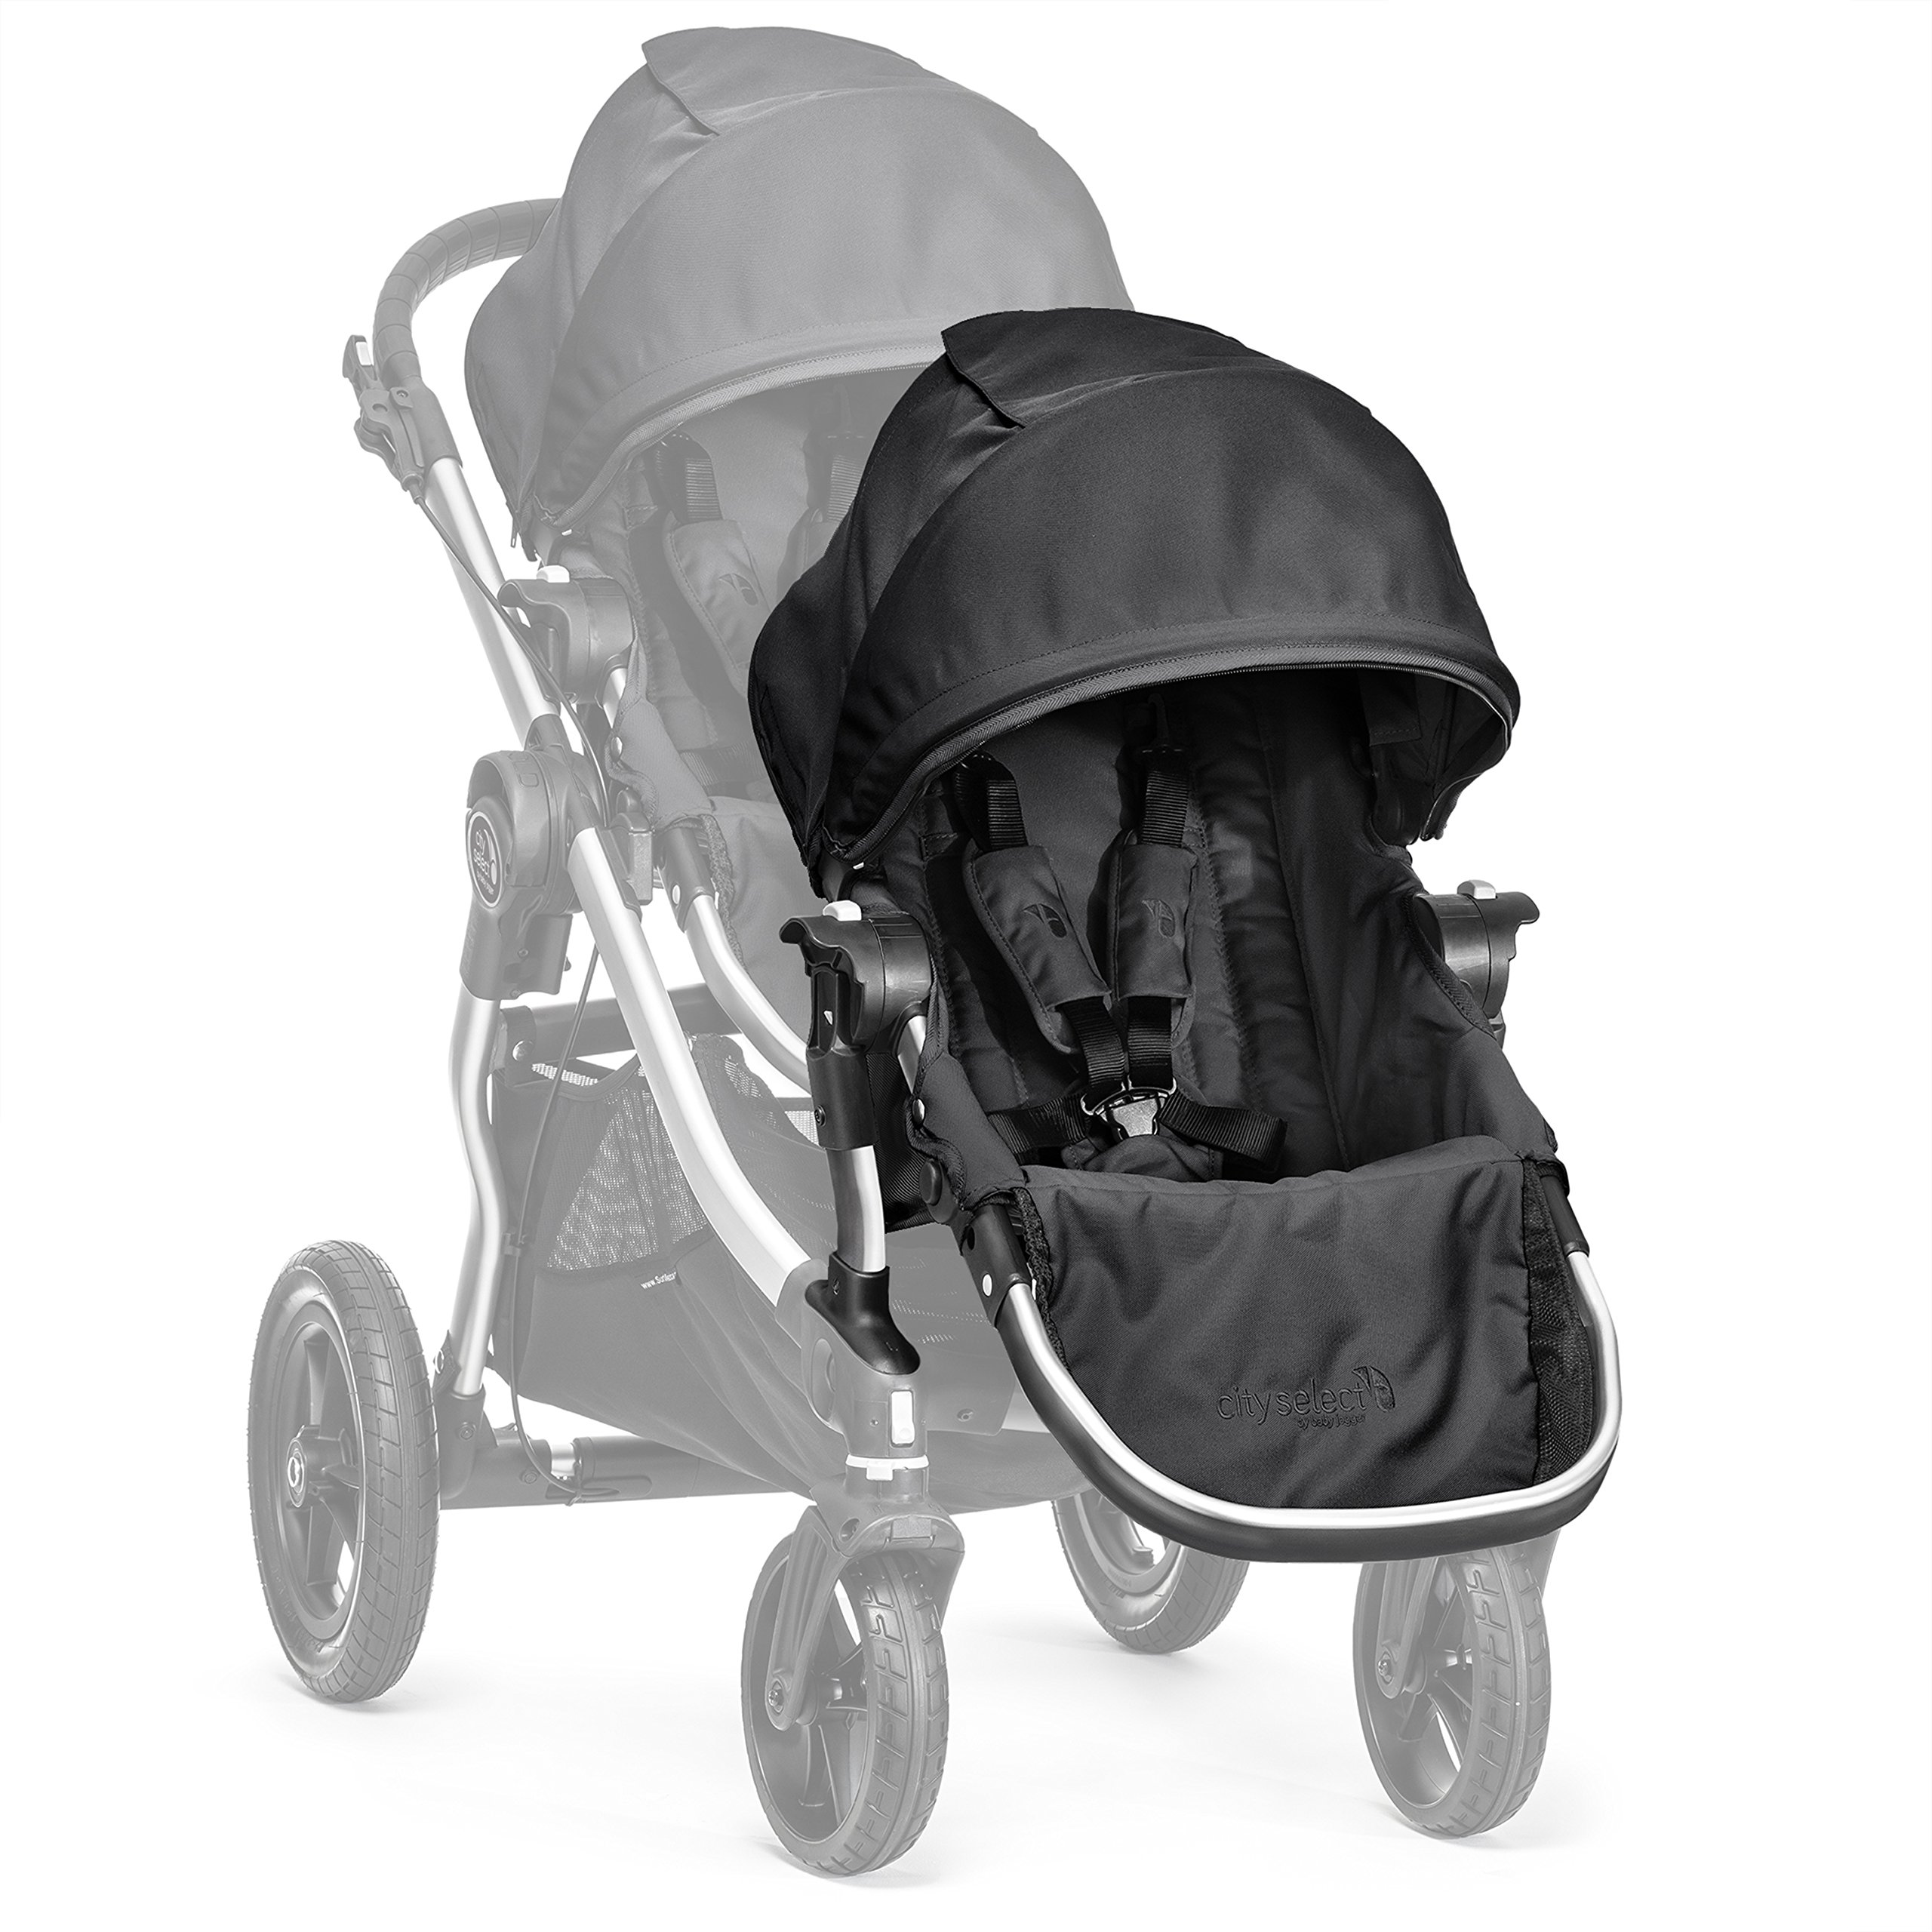 Baby Jogger City Select Second Seat Kit with Silver Frame, Onyx by Baby Jogger (Image #4)